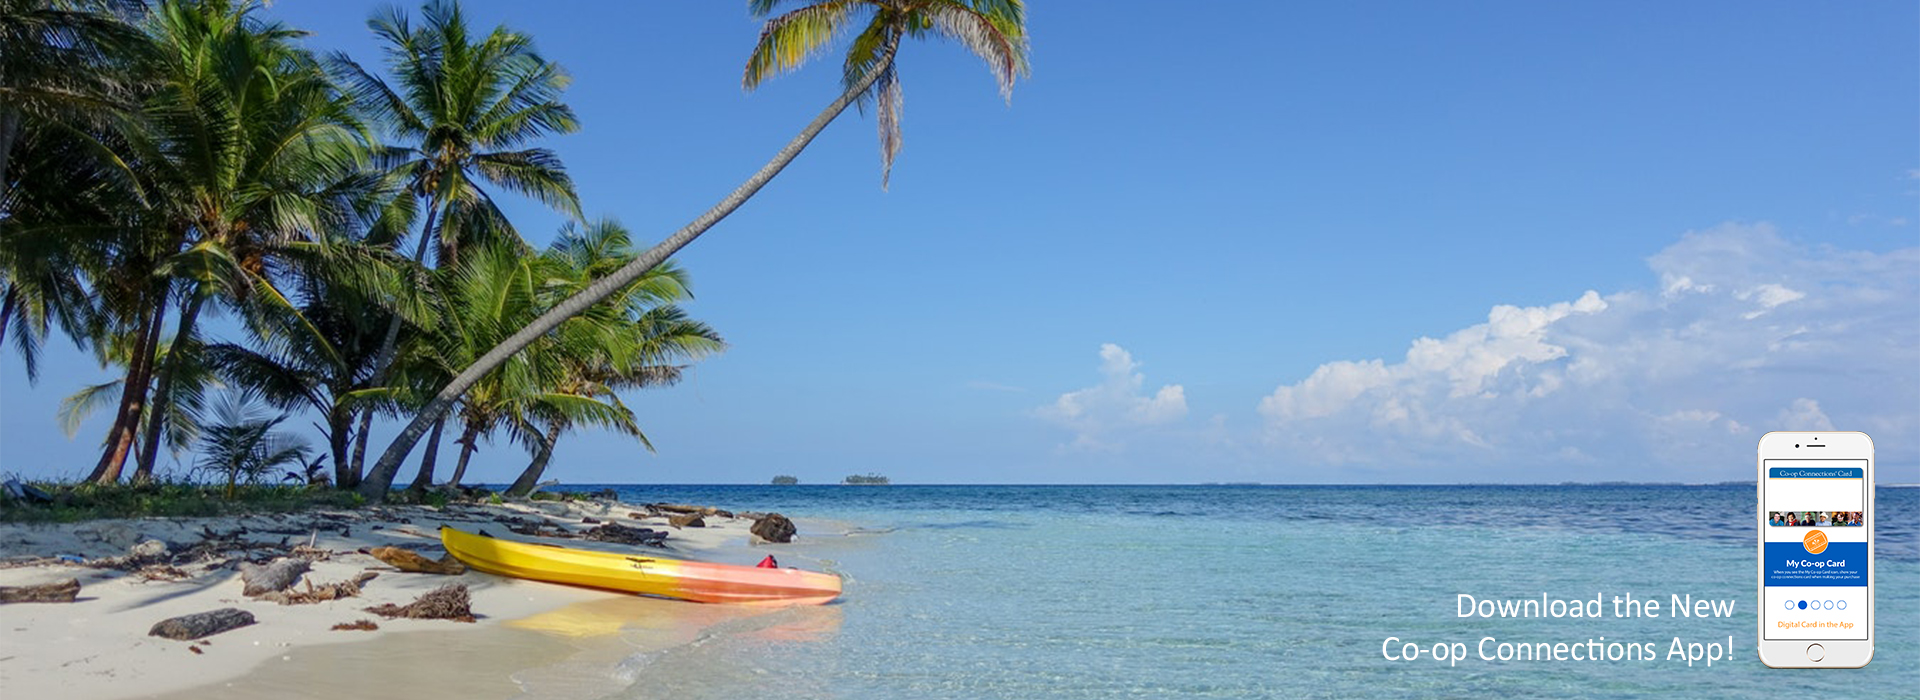 Kayak on a tropical beach